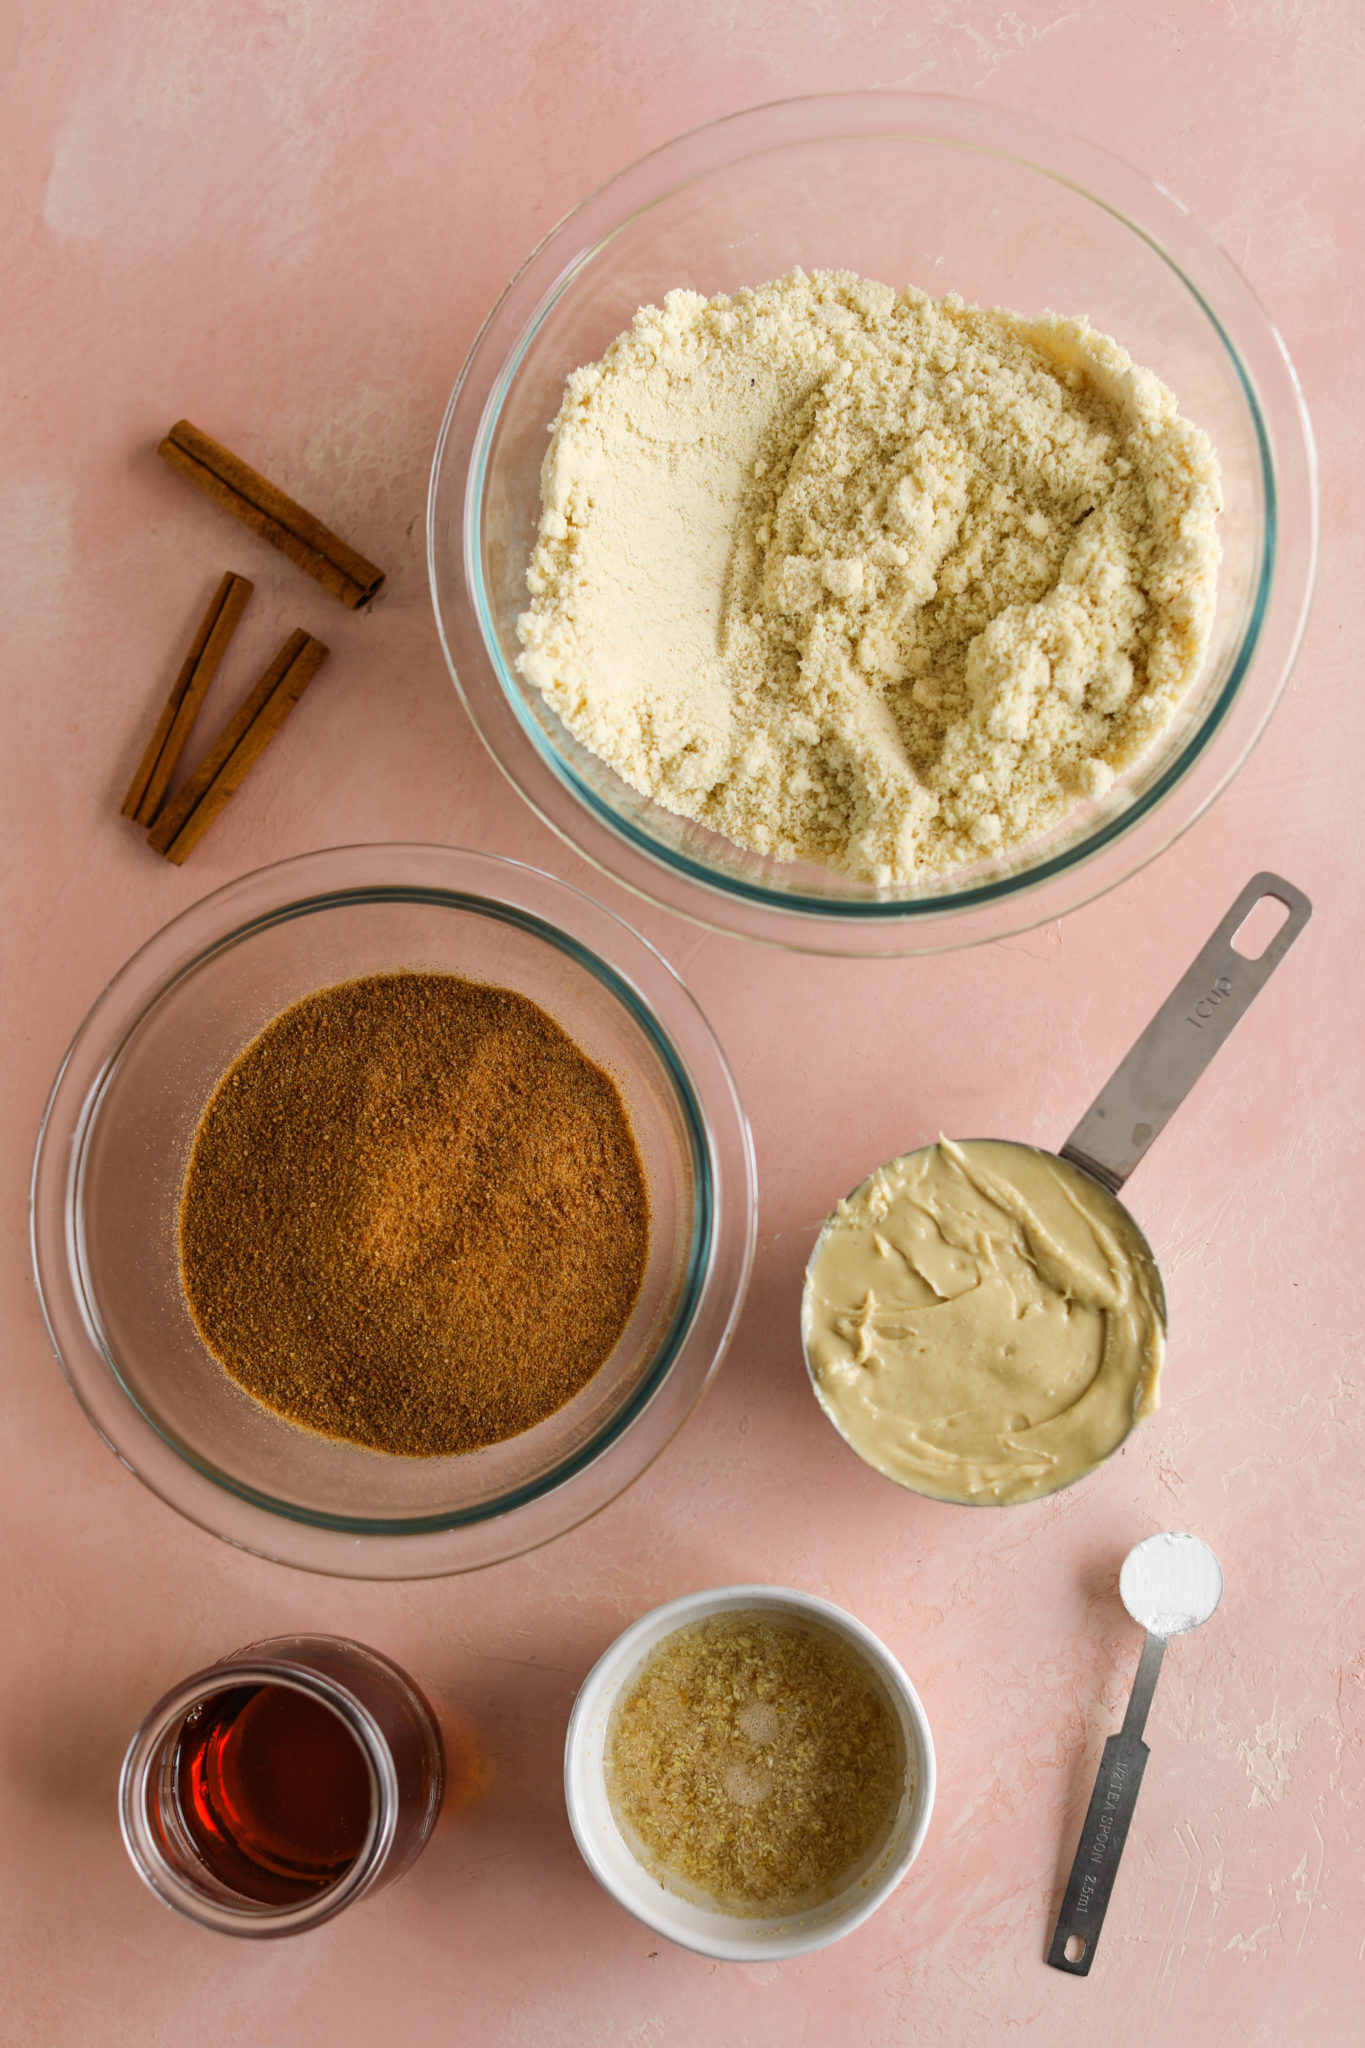 Almond Flour Cashew Butter Snickerdoodle ingredients